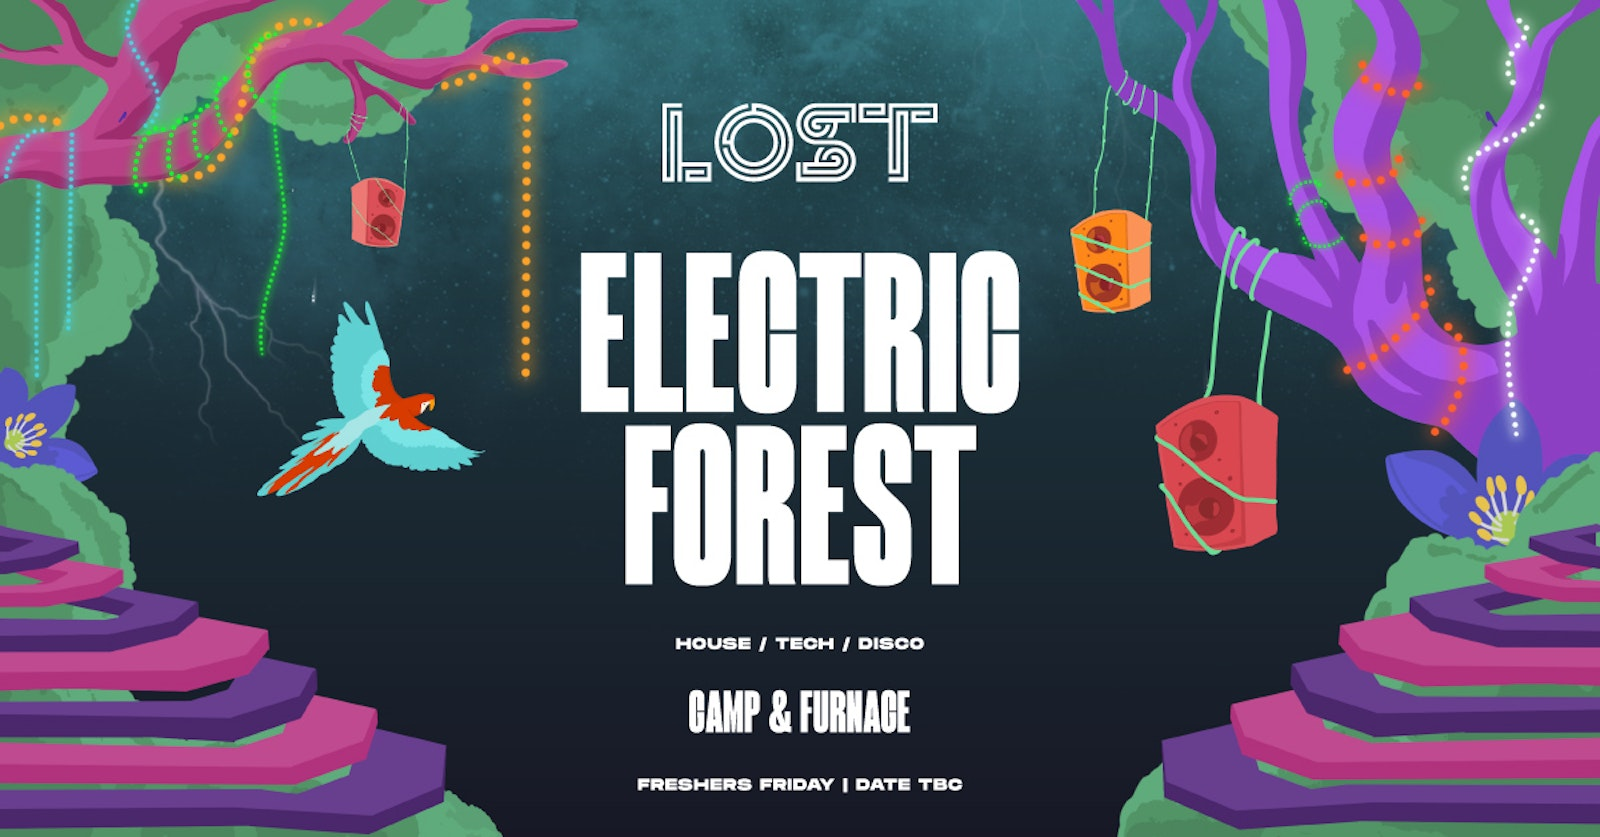 LOST Electric Forest : Liverpool Freshers 2020 : Date TBC